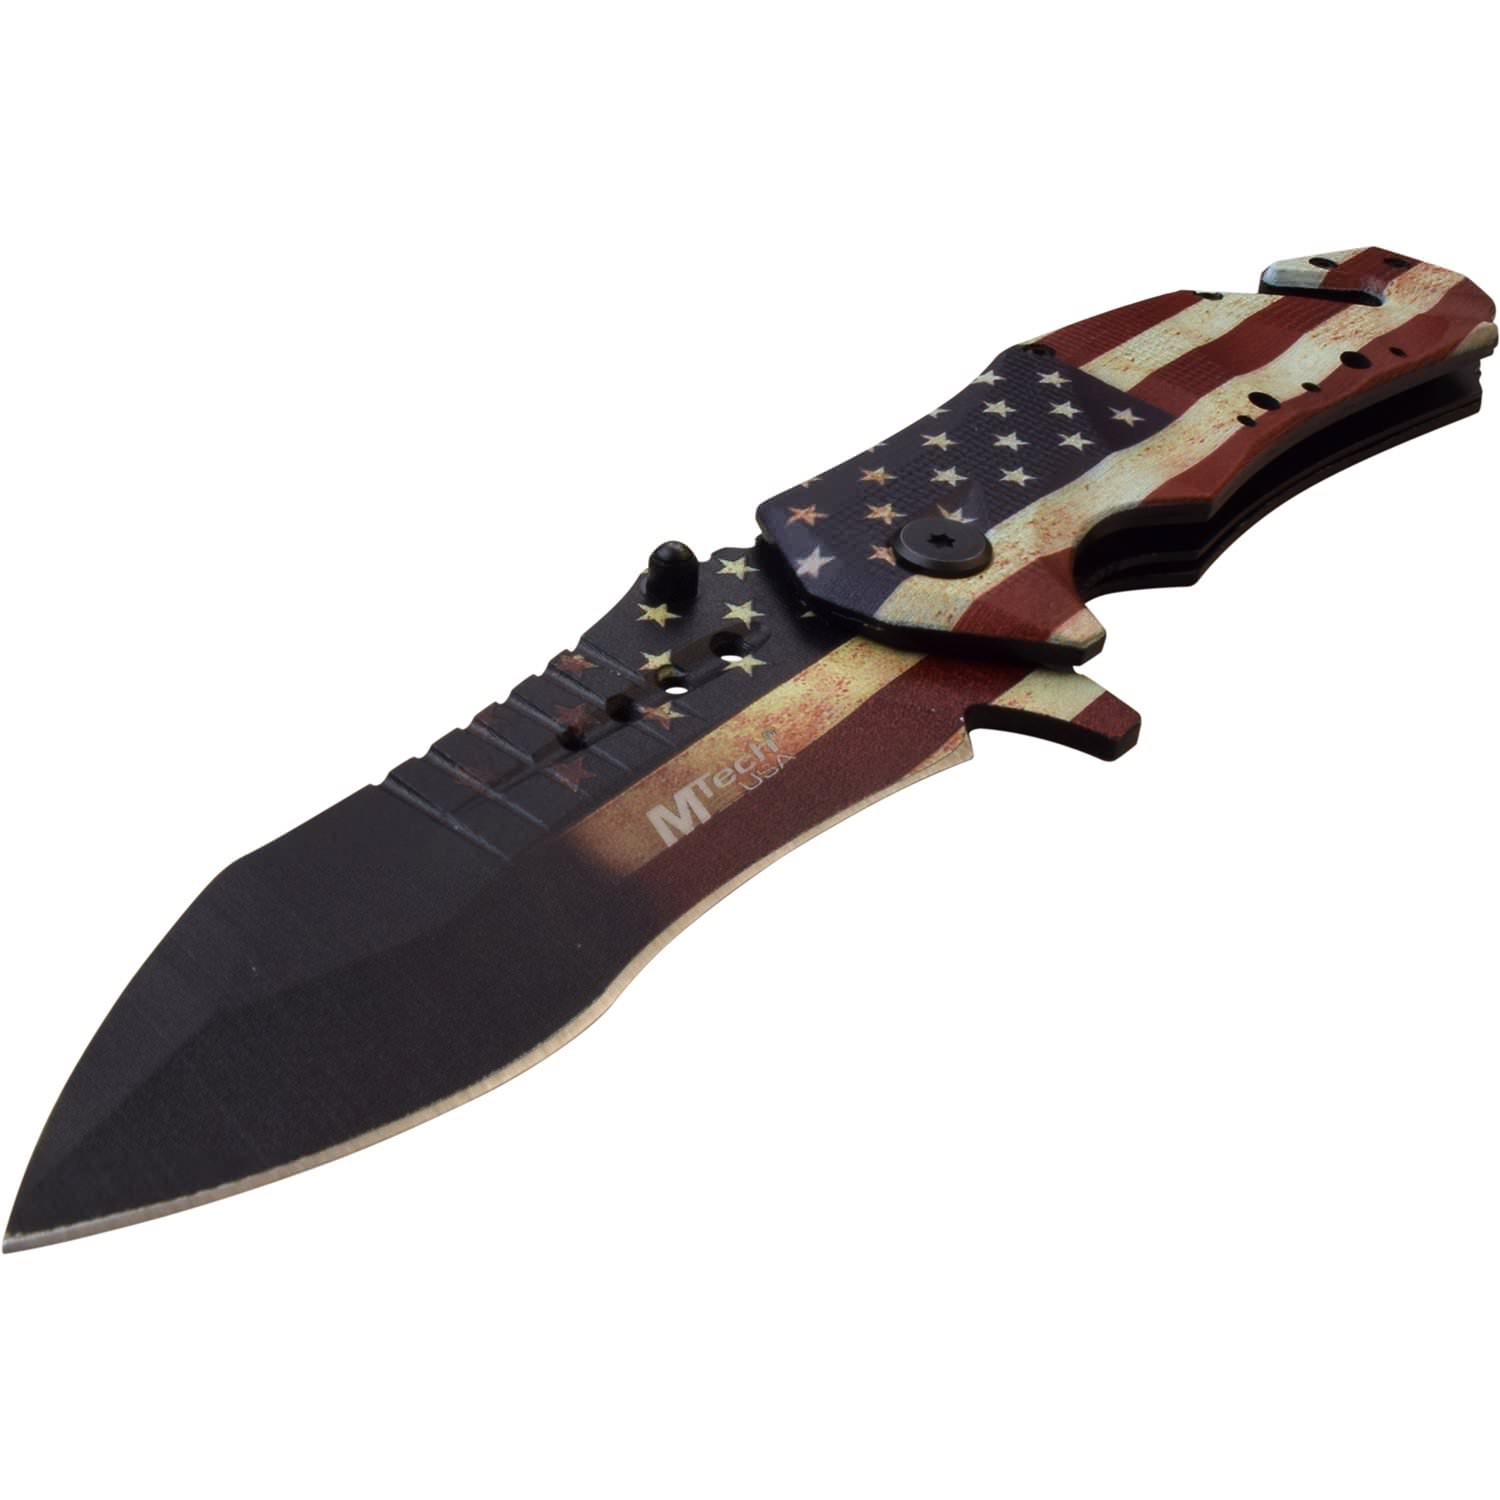 Spring Assisted Knife Tactical Knife